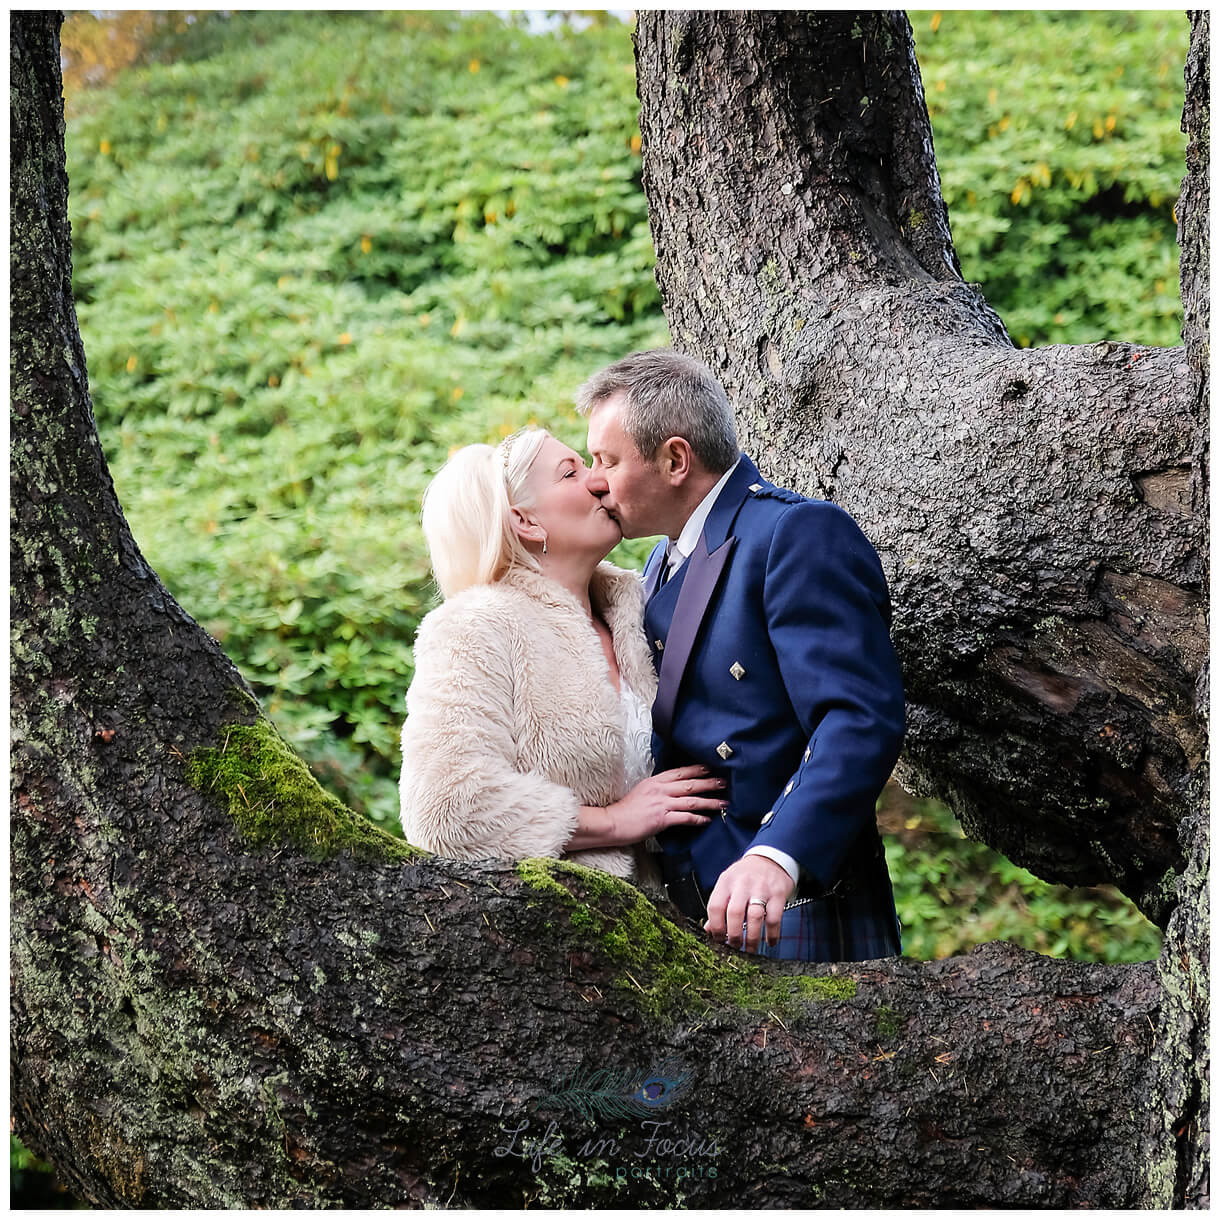 Wedding photo of bride and groom kissing under tree